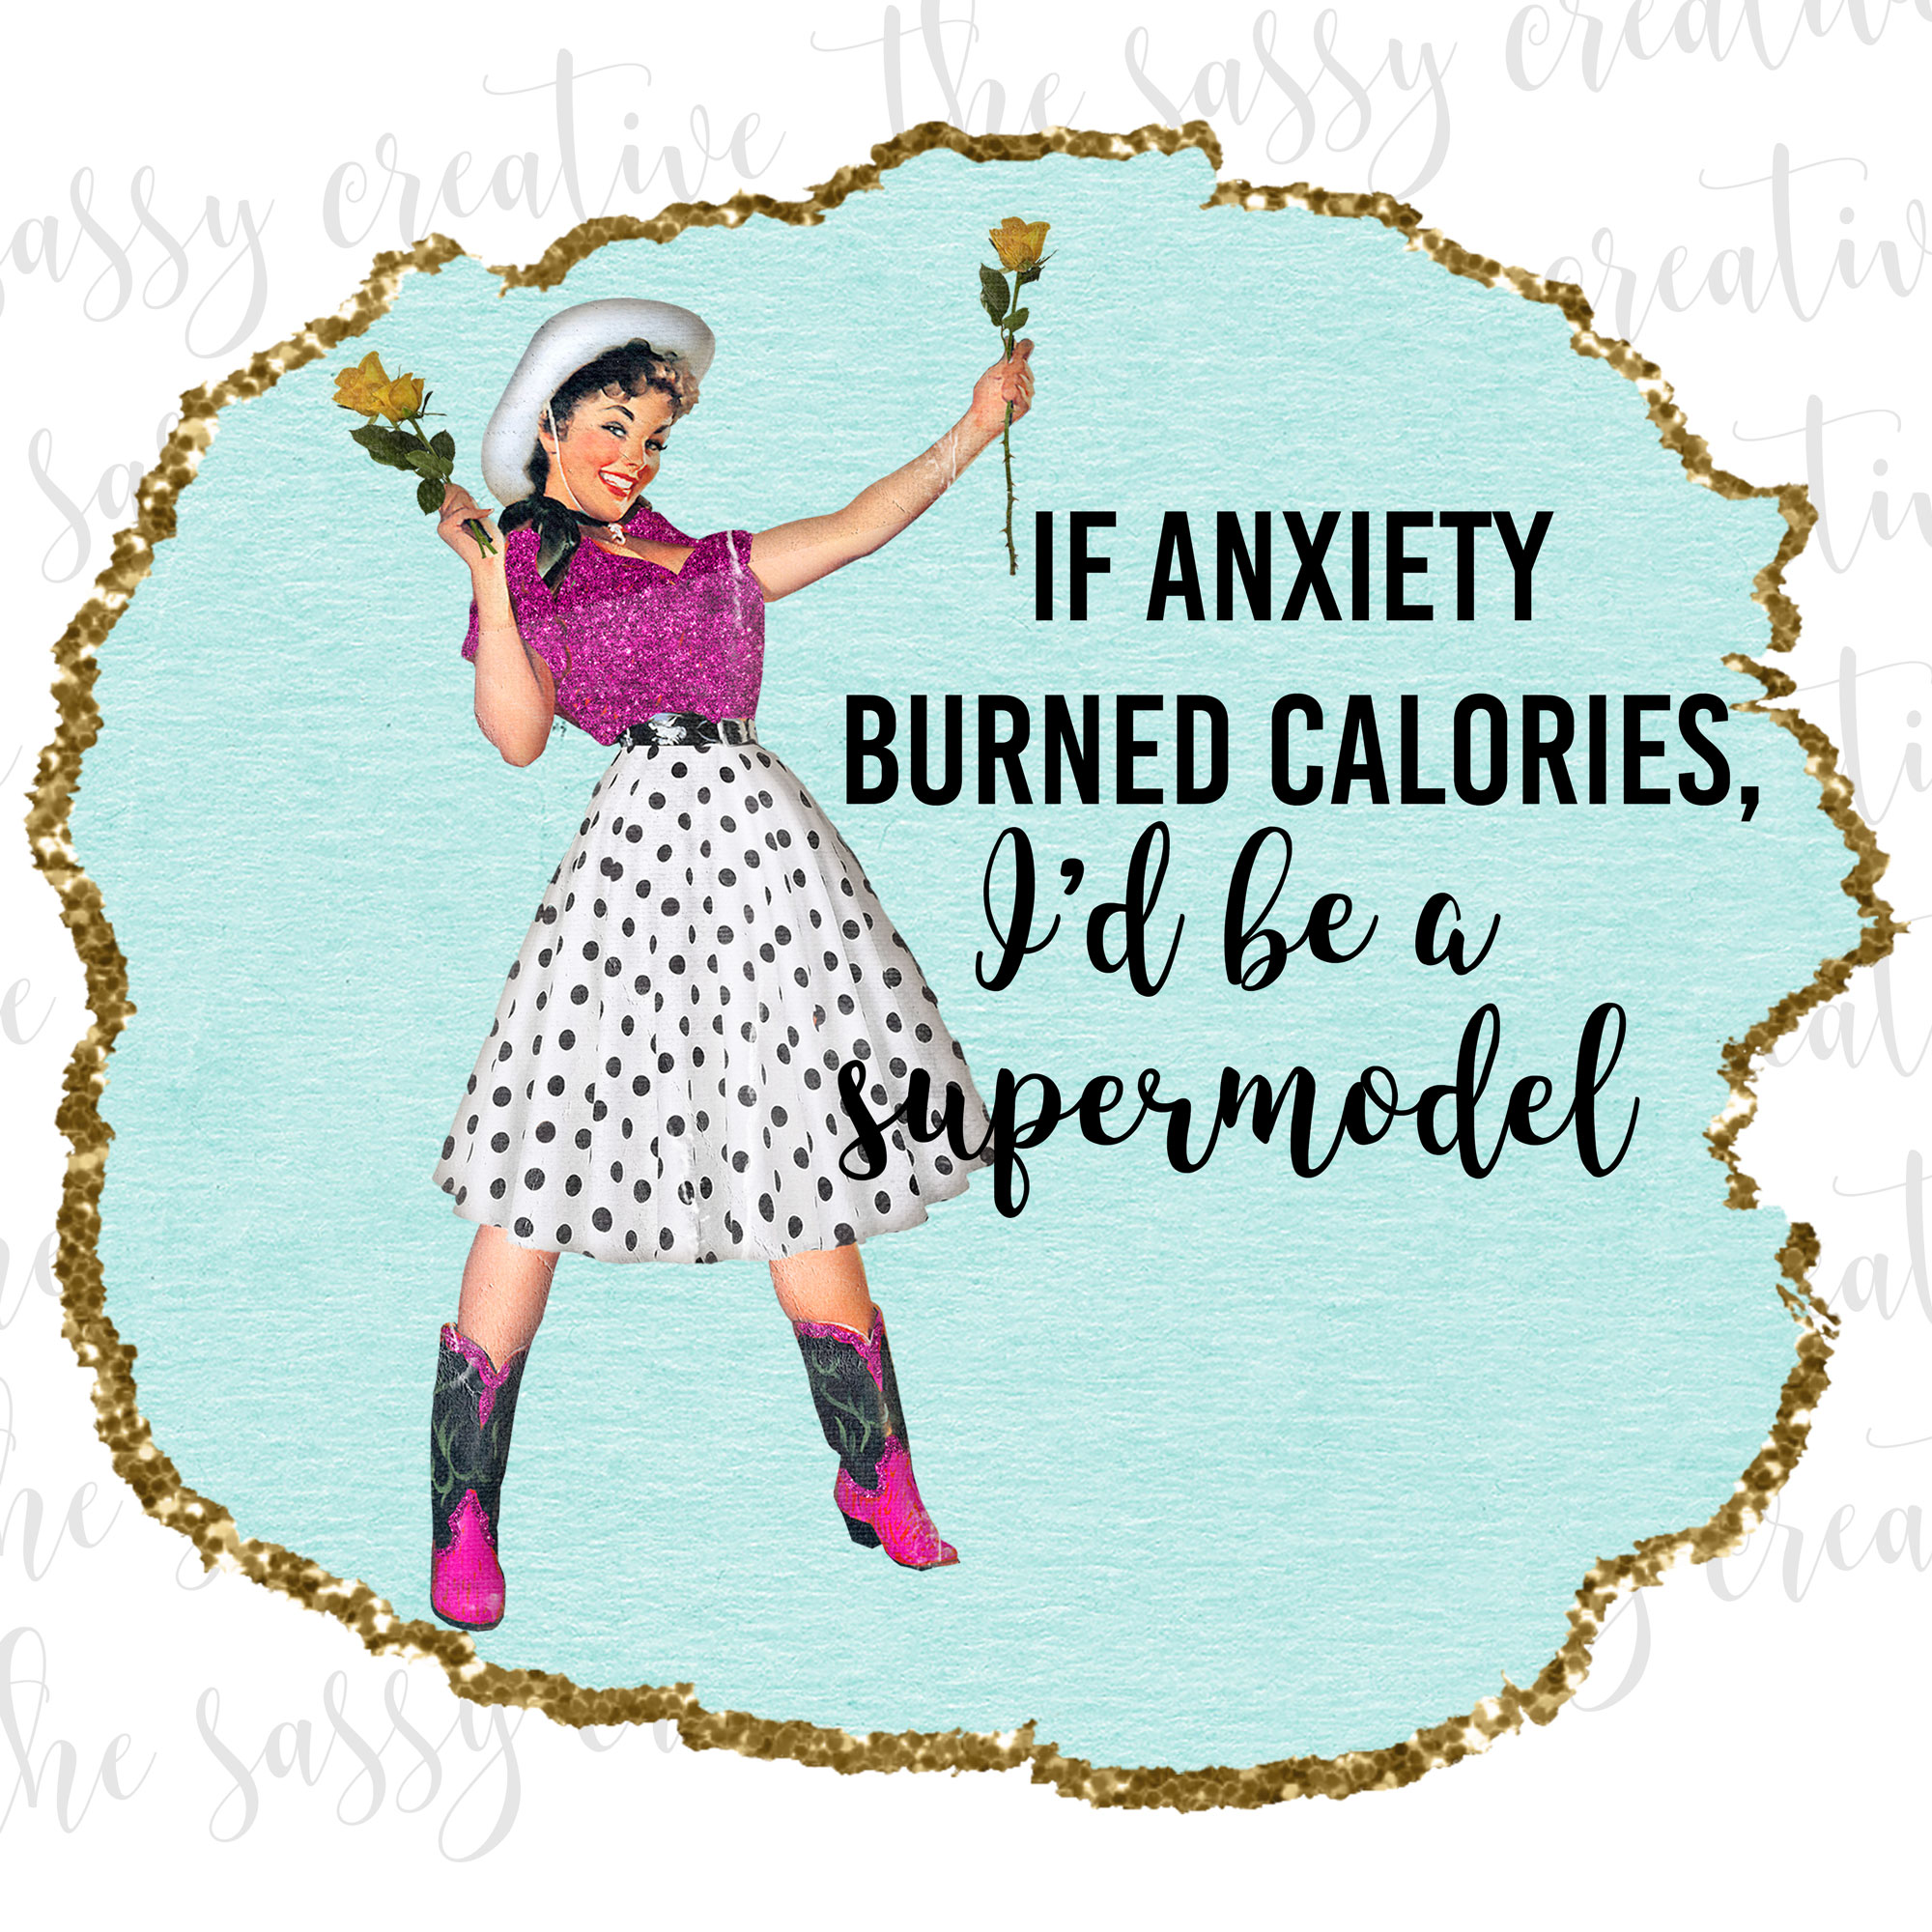 If-anxiety-burned-calories-cover-2